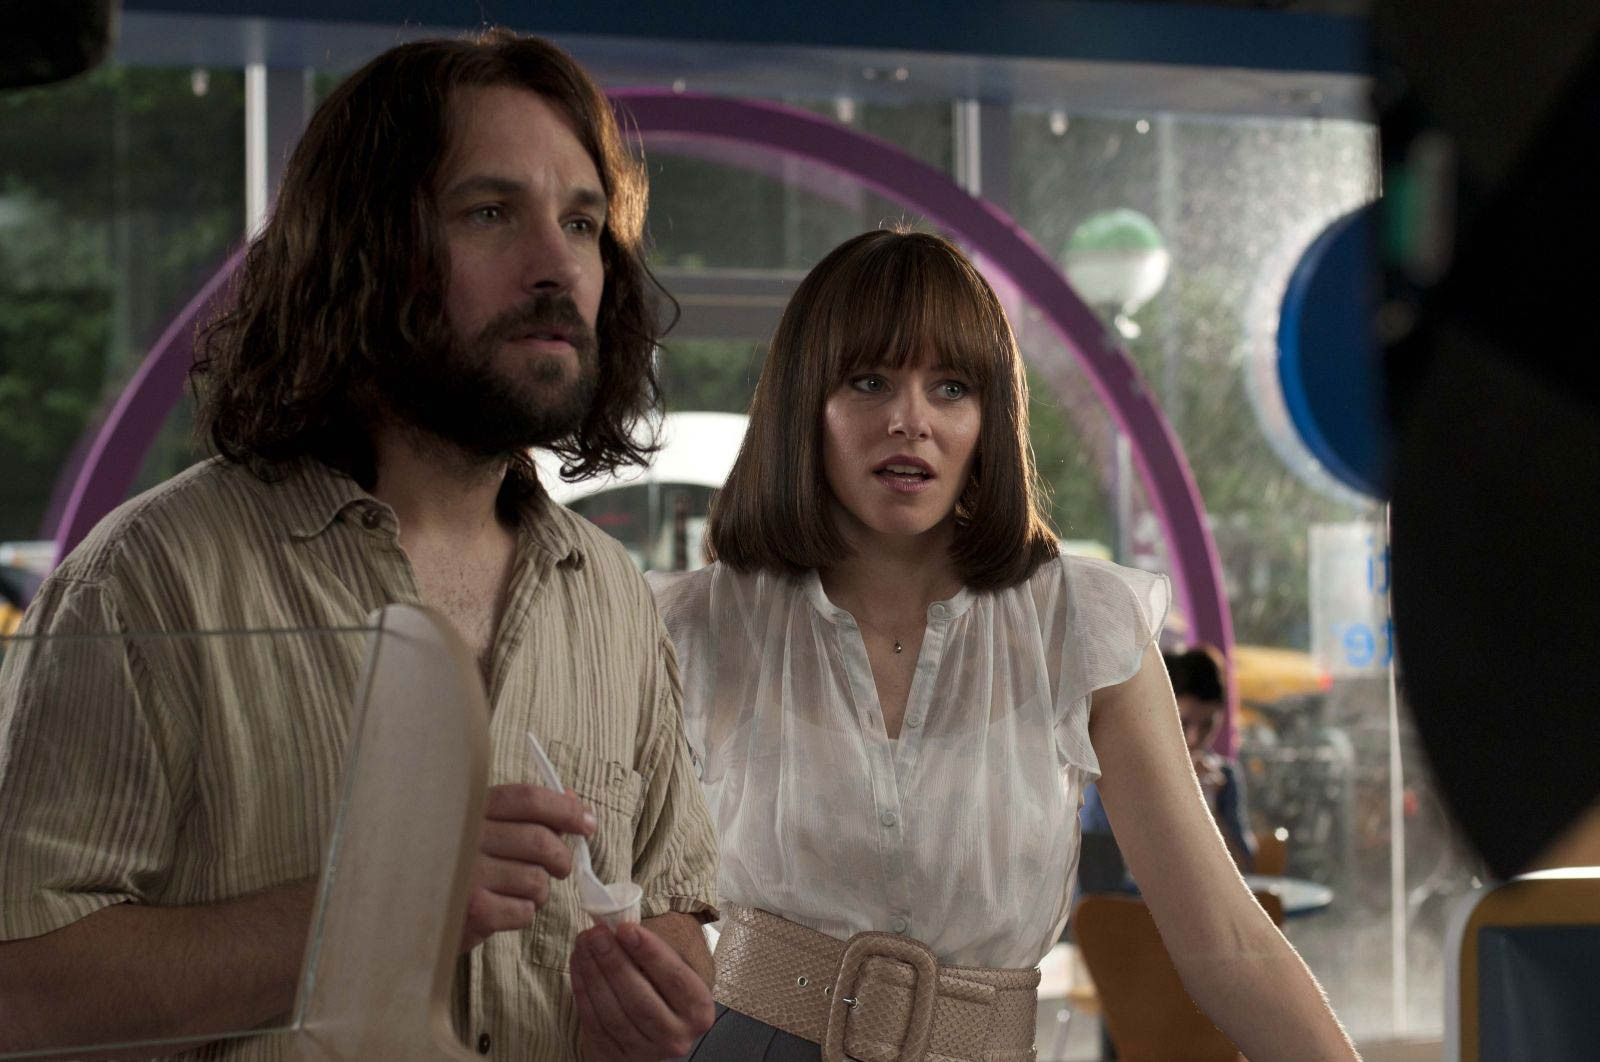 Paul Rudd and Elizabeth Banks are Ned and Miranda in Our - Idiot Brother.